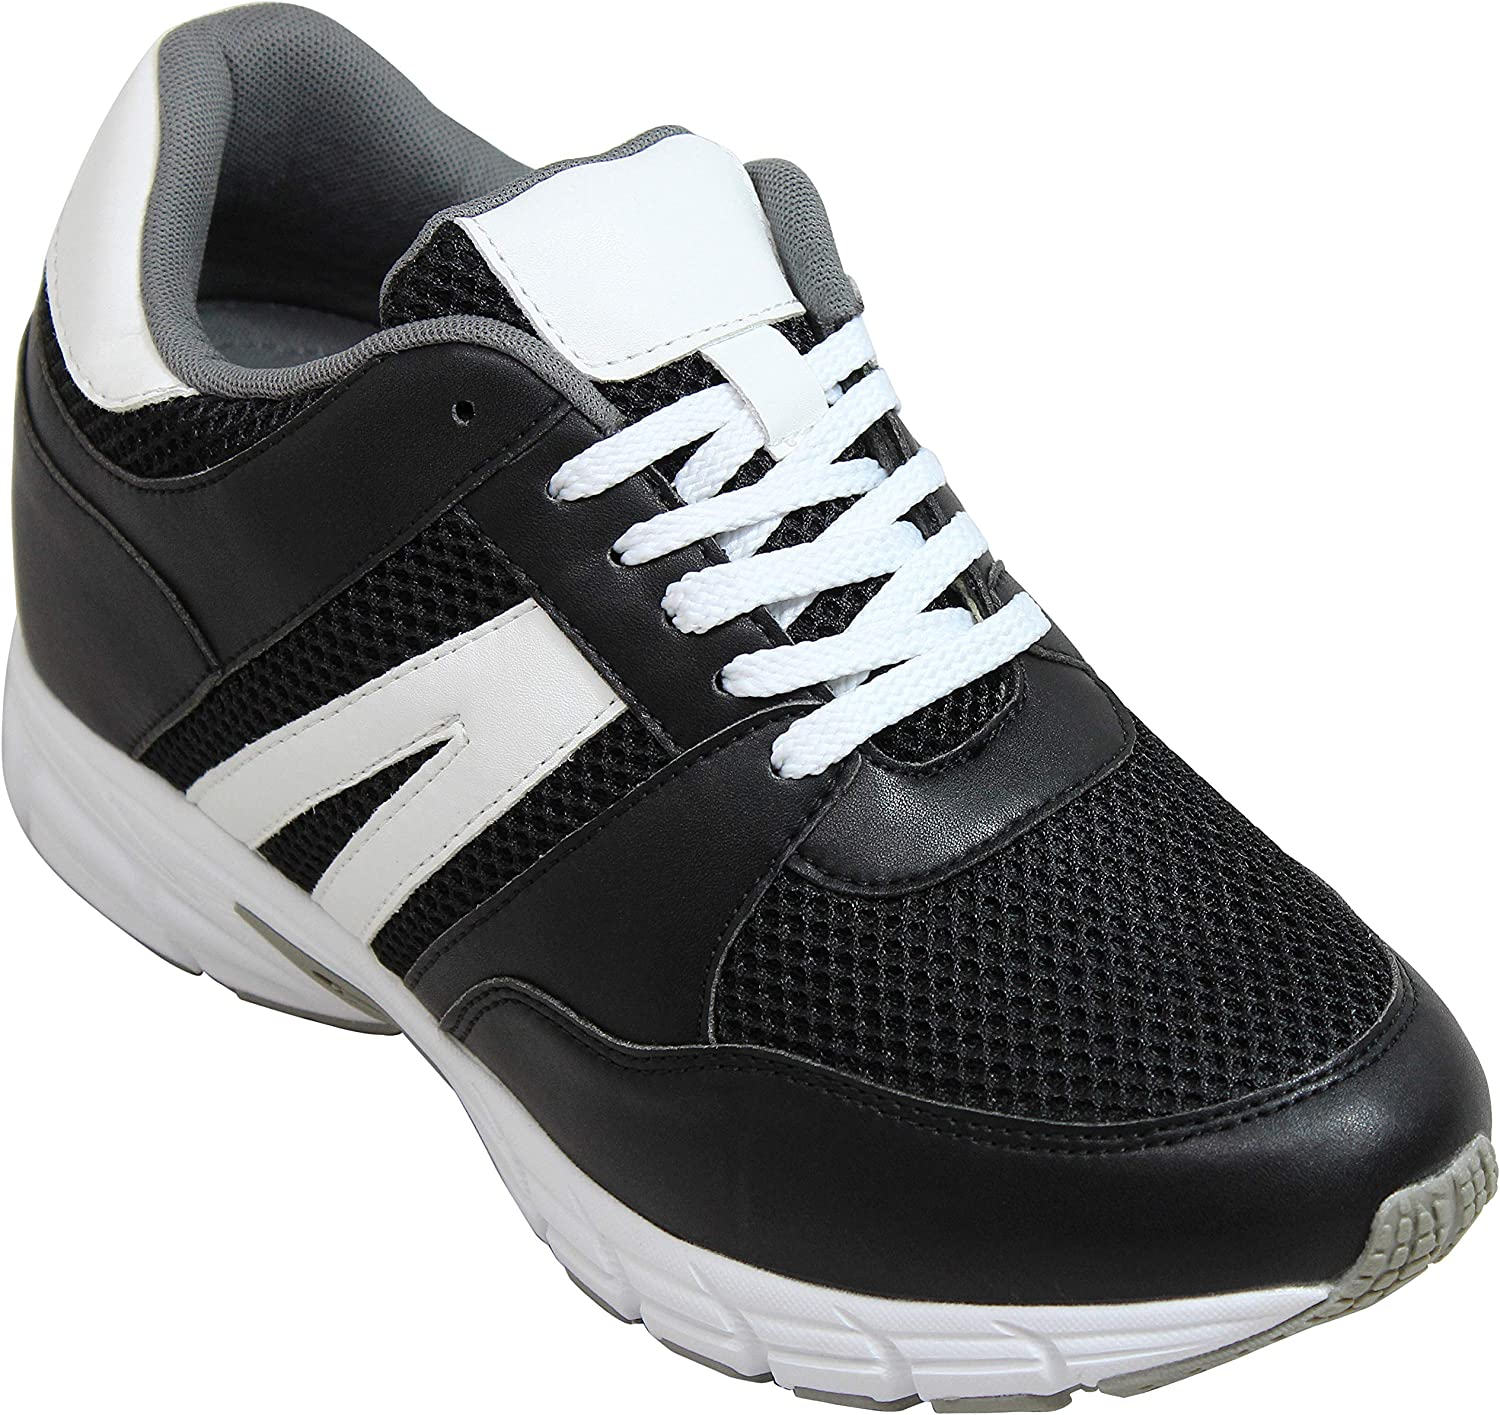 TOTO - H2213 - 3.3 Inches Taller - Height Increasing Elevator shoes - Black White Lightweight Sneakers